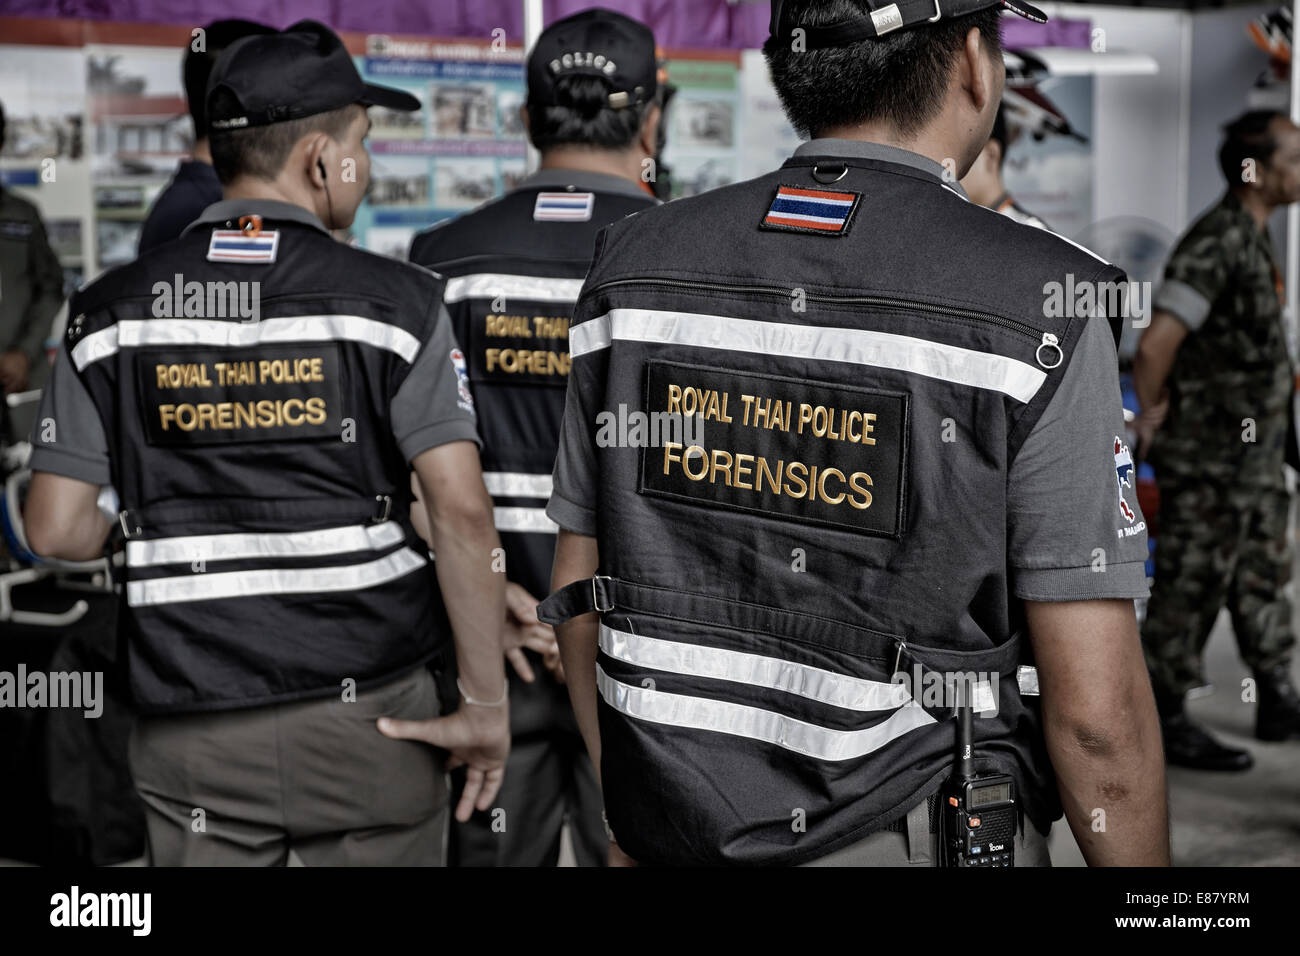 Forensic Officer Thai Police Forensic Officers Thailand S E Asia Stock Photo Alamy